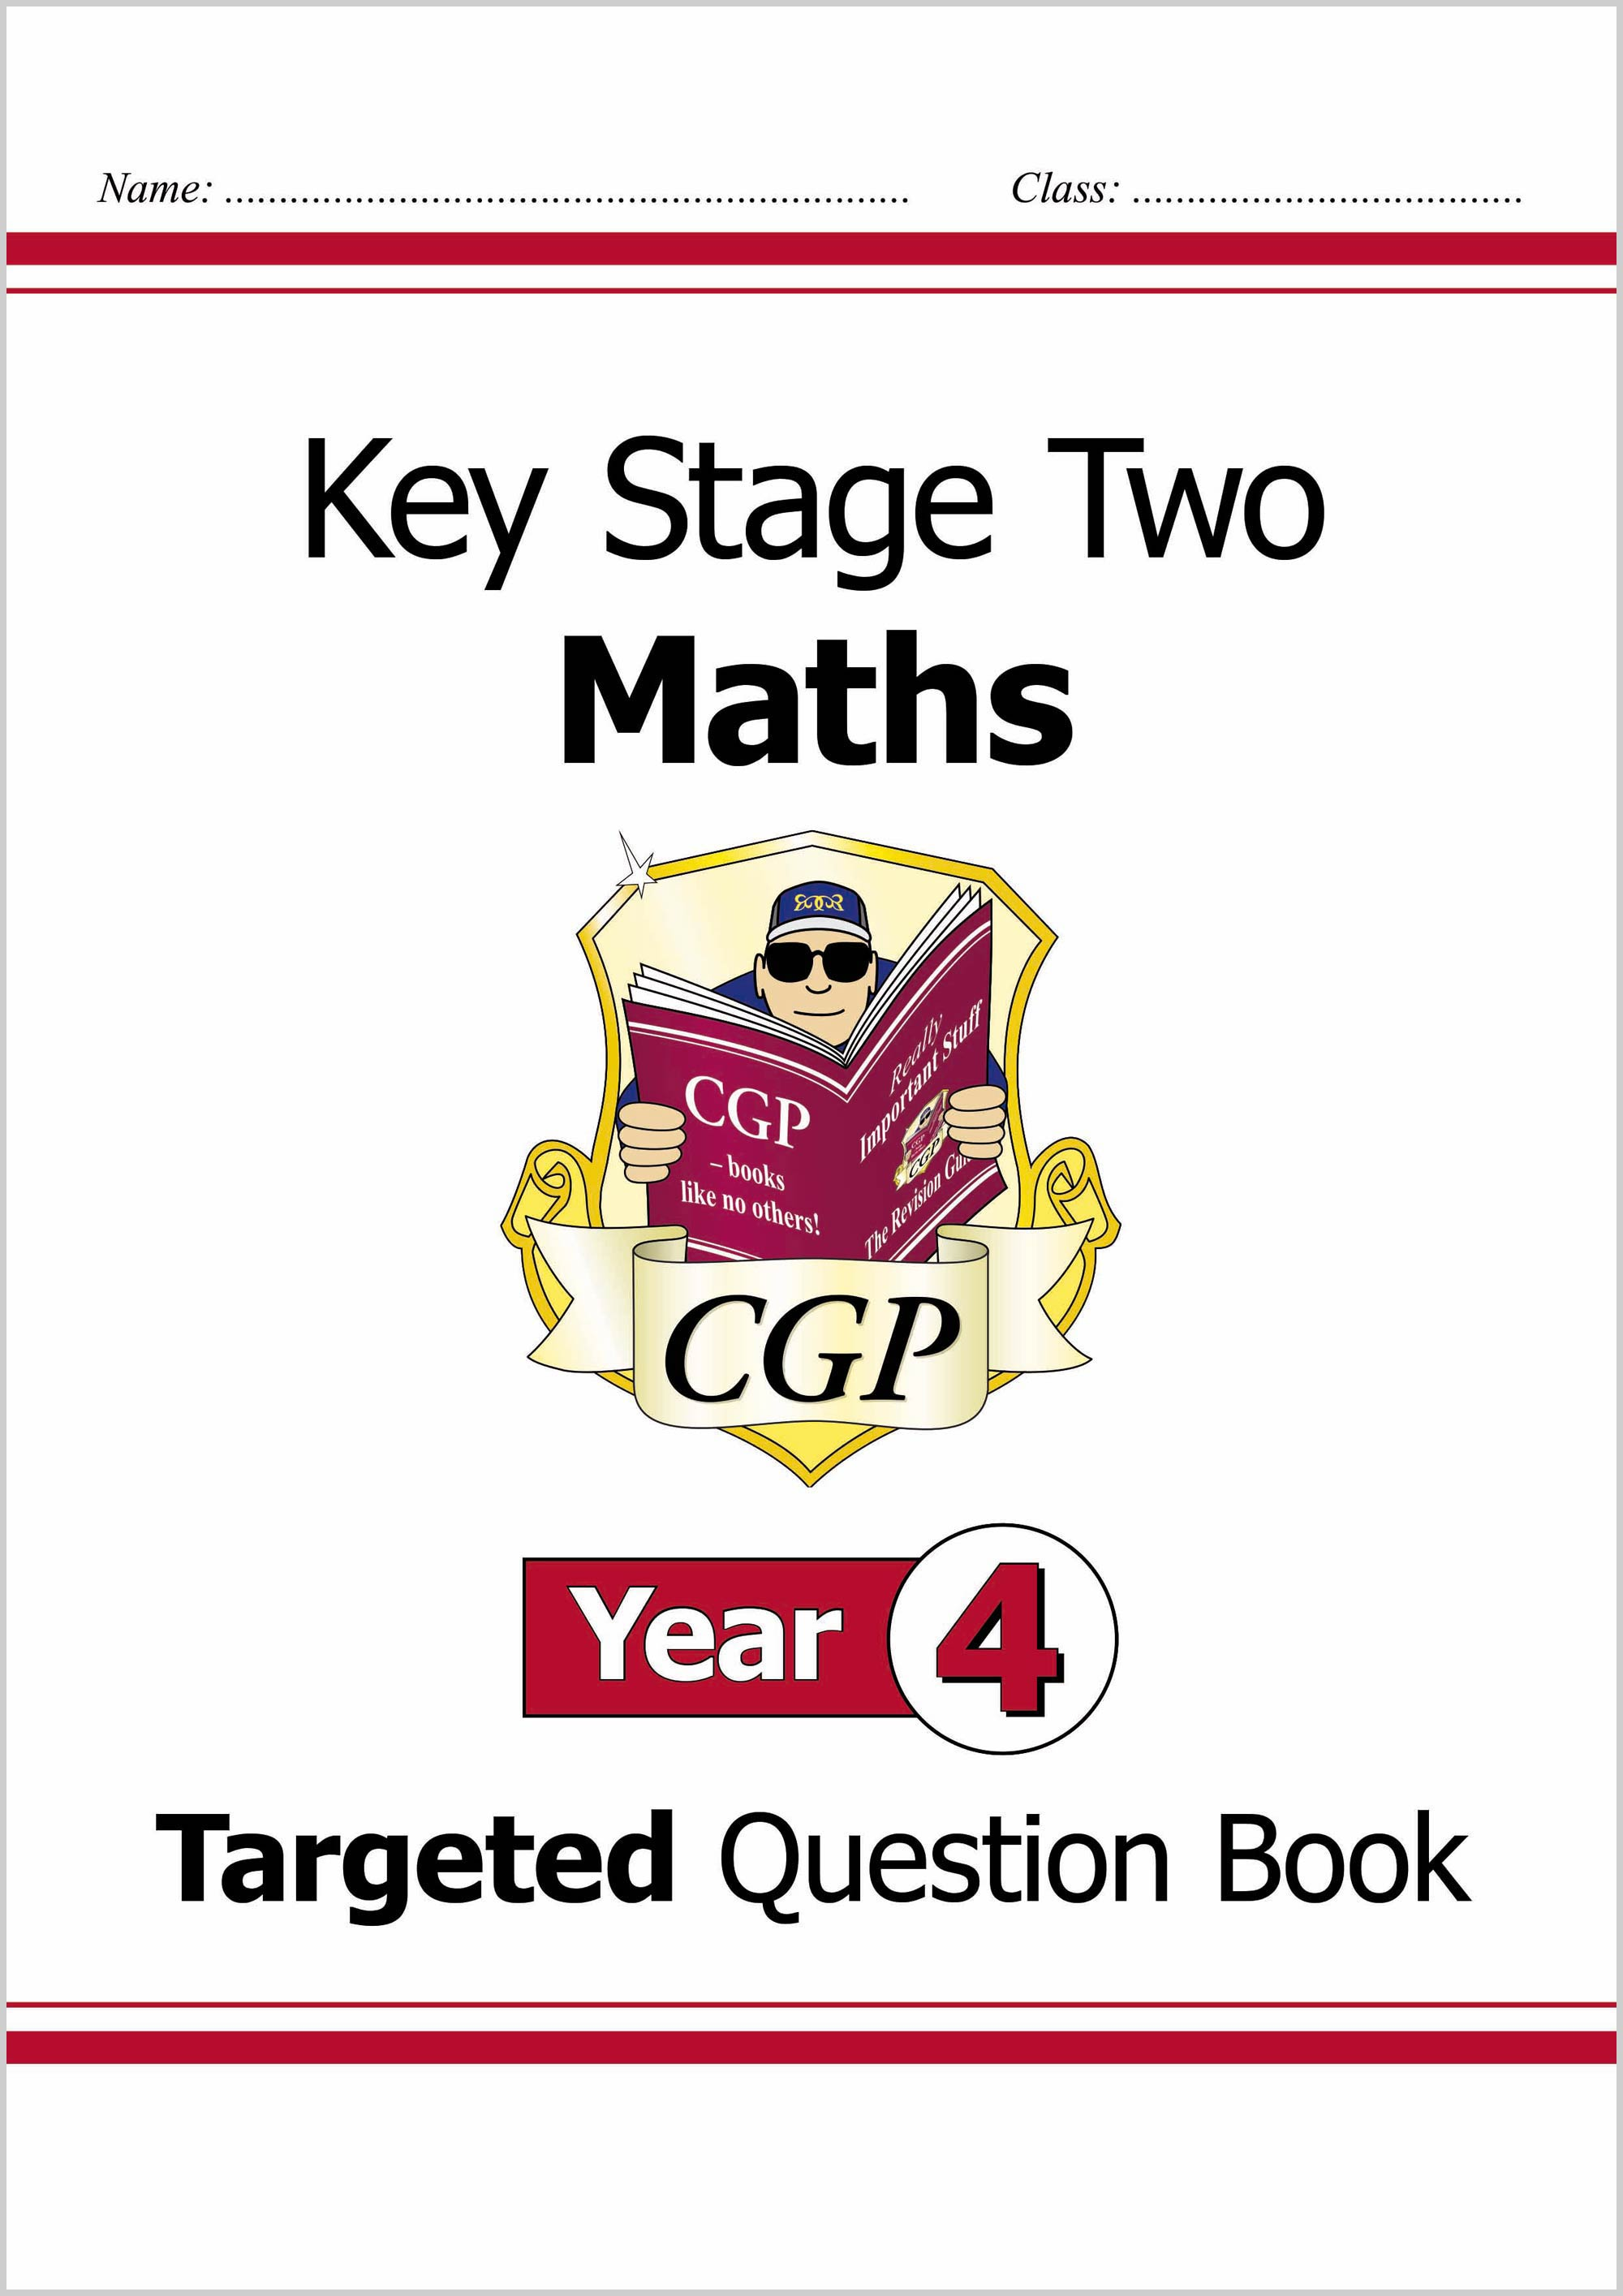 M4Q24DK - KS2 Maths Targeted Question Book - Year 4